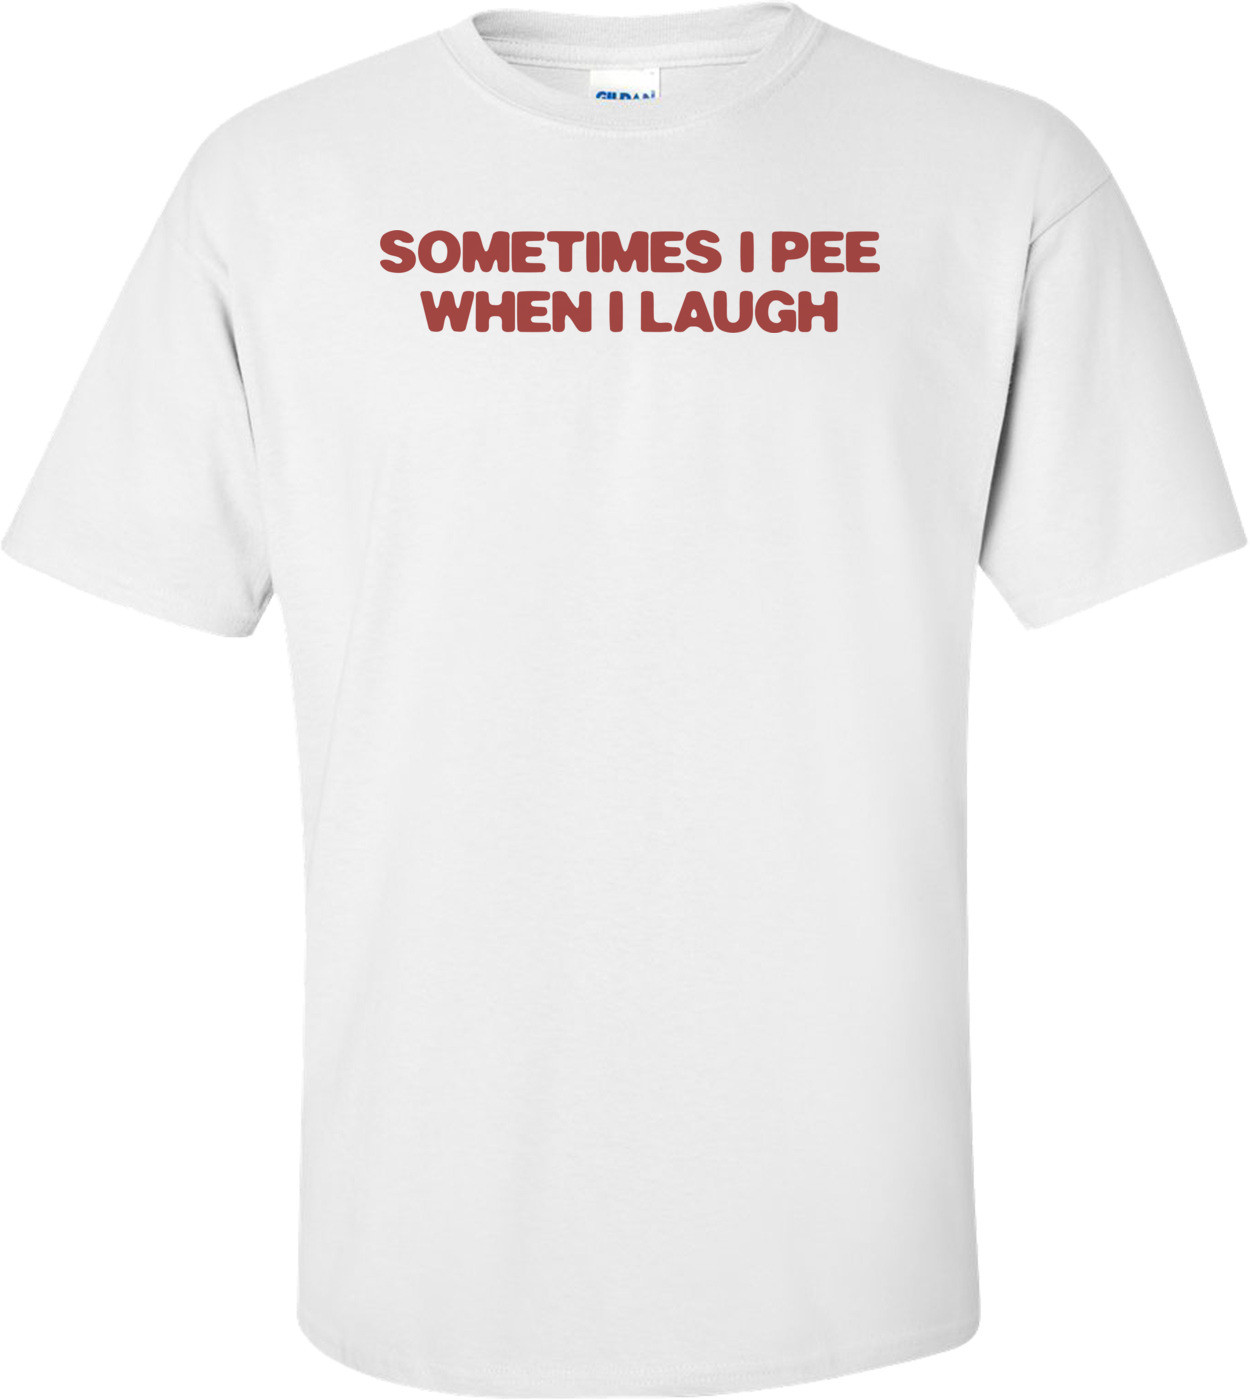 Sometimes I Pee When I Laugh T-shirt